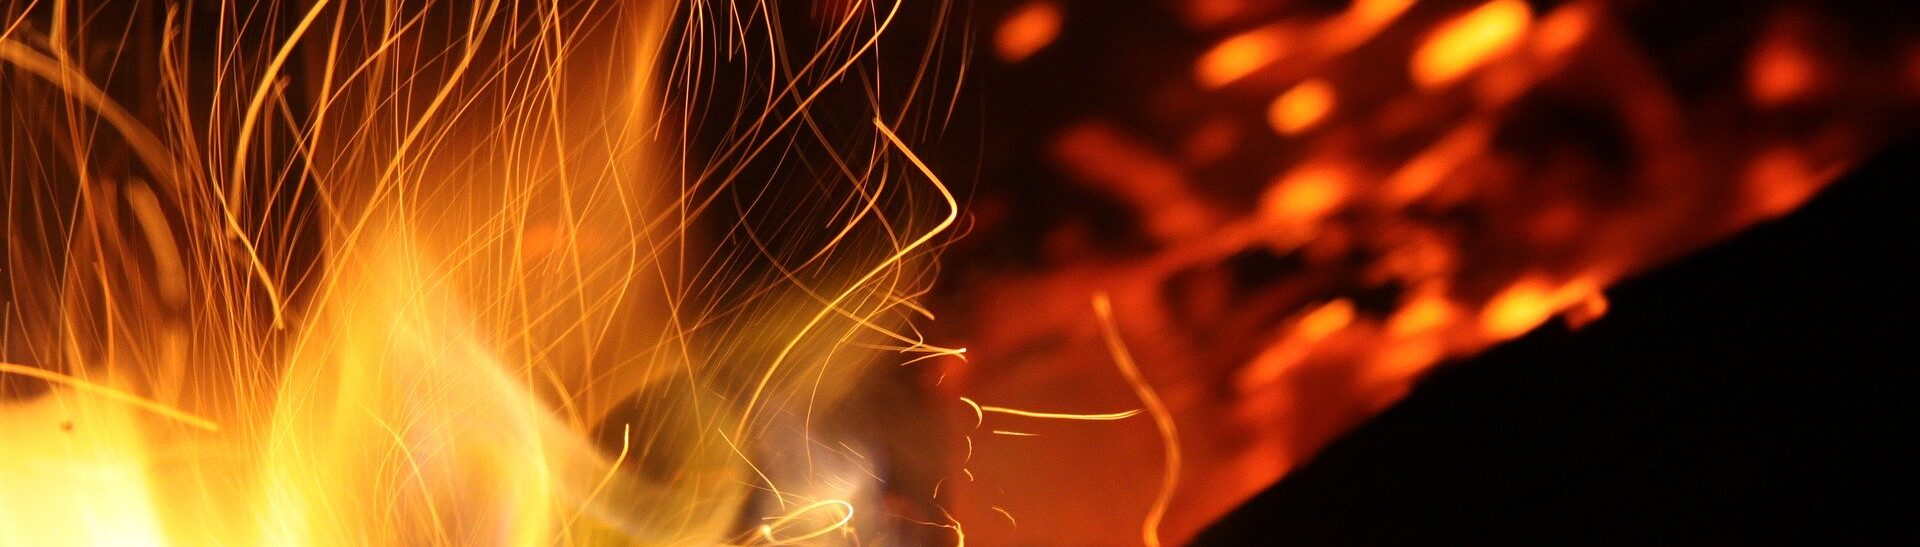 Flamme eines Lagerfeuers